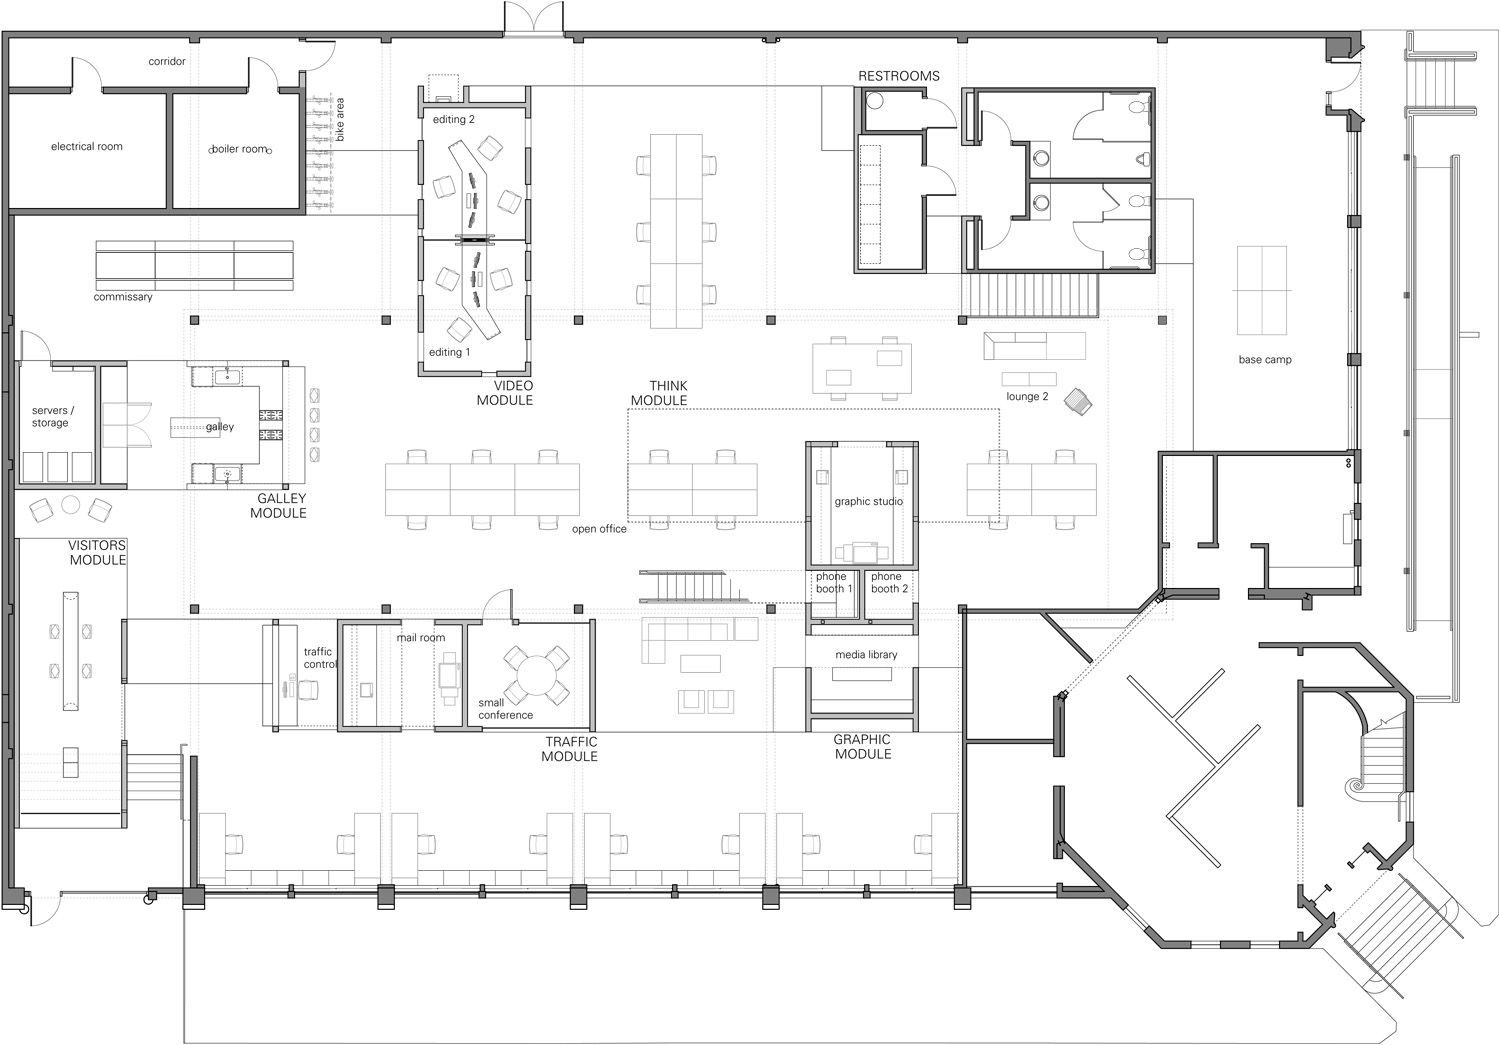 office floor plans. 0630 plan office floor plans l